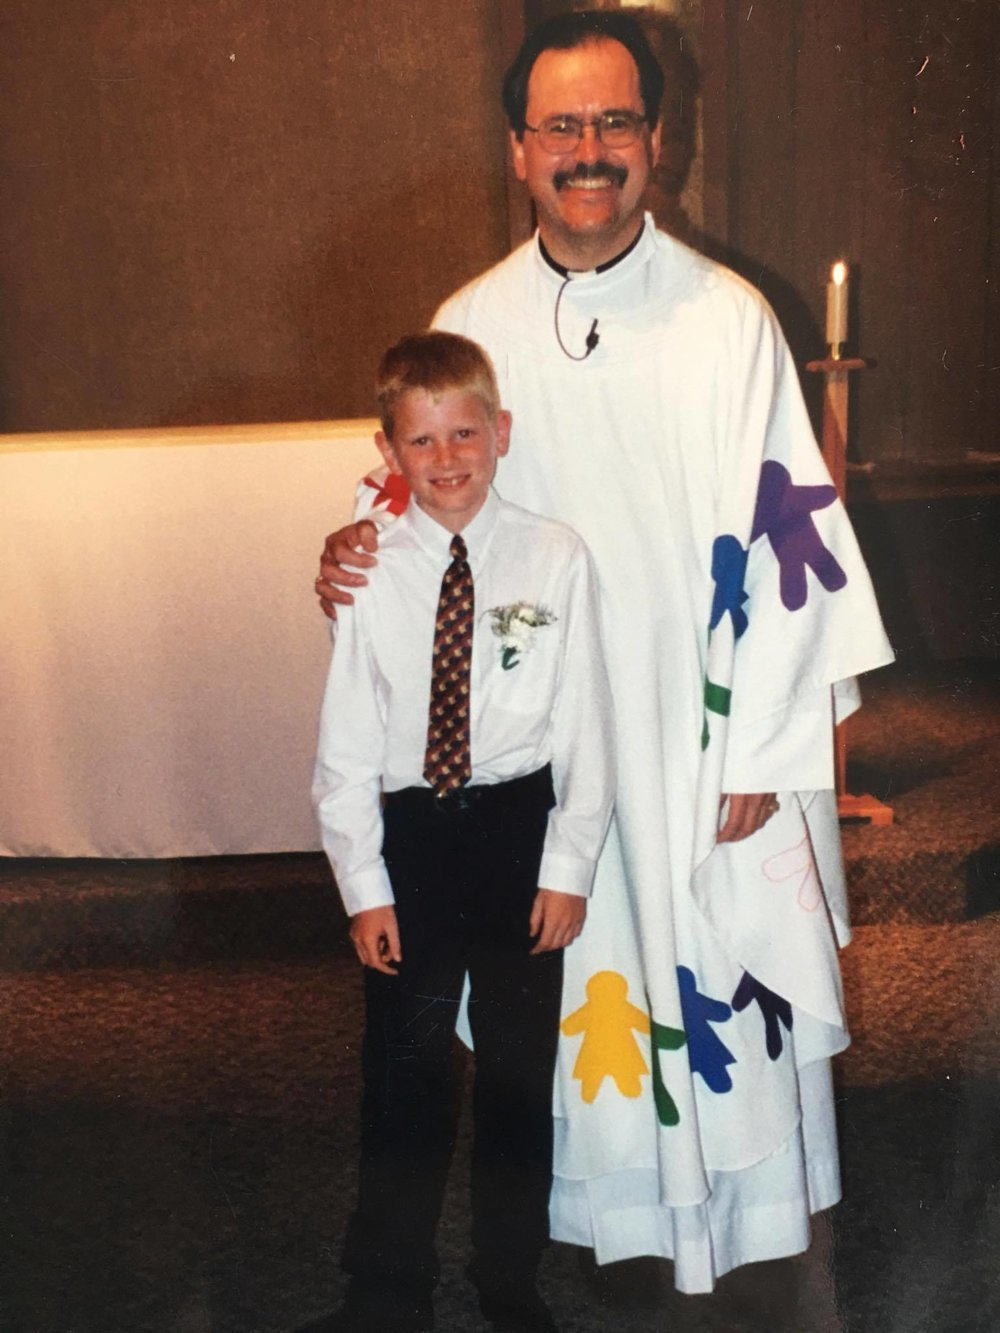 My First Communion, April 2001